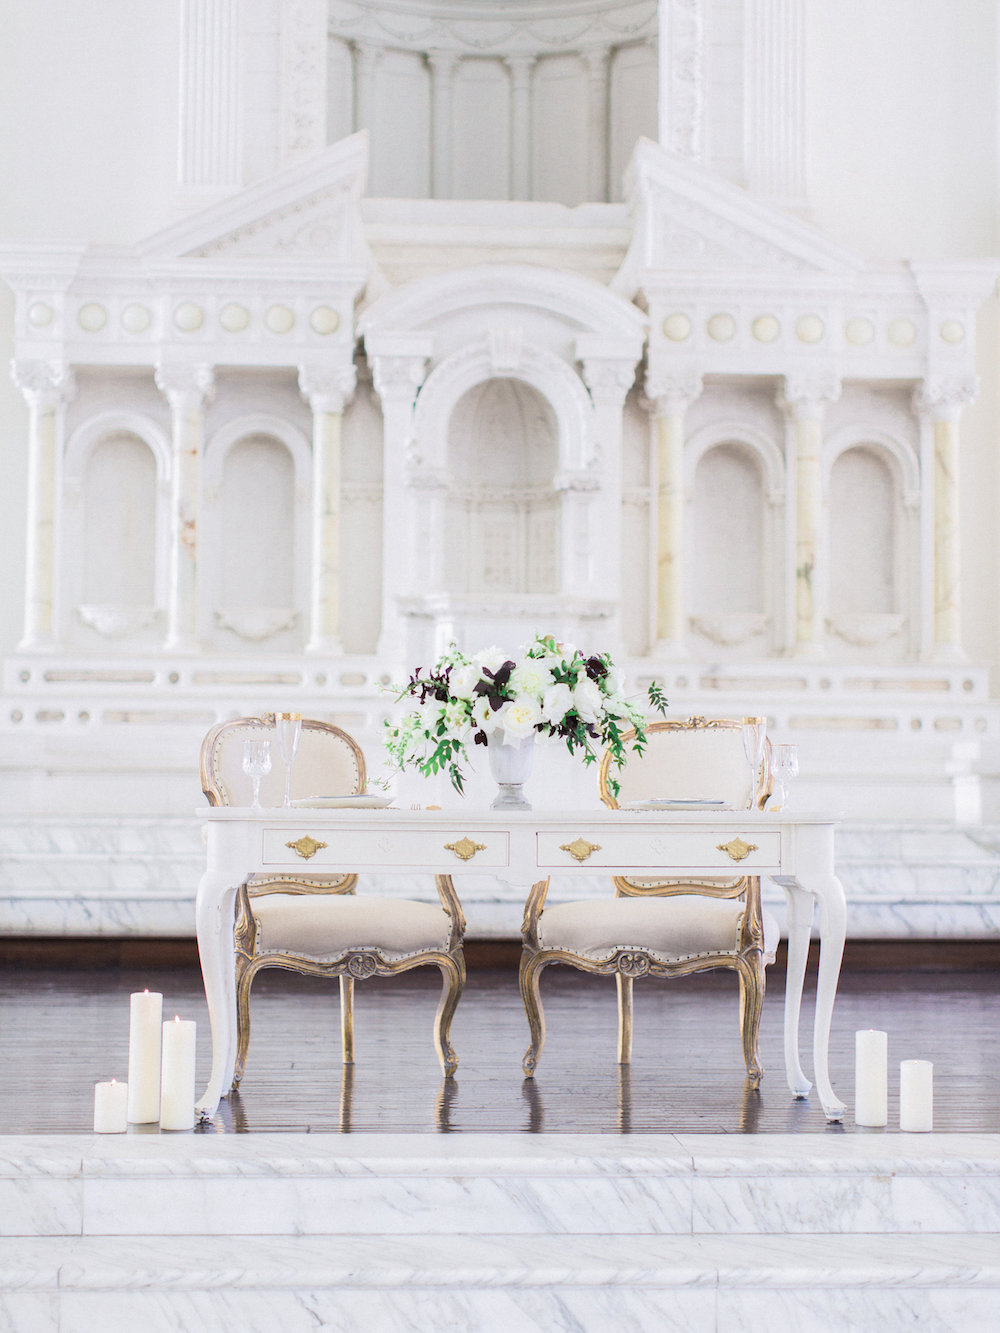 Wedding venue vibiana with marble steps and altar